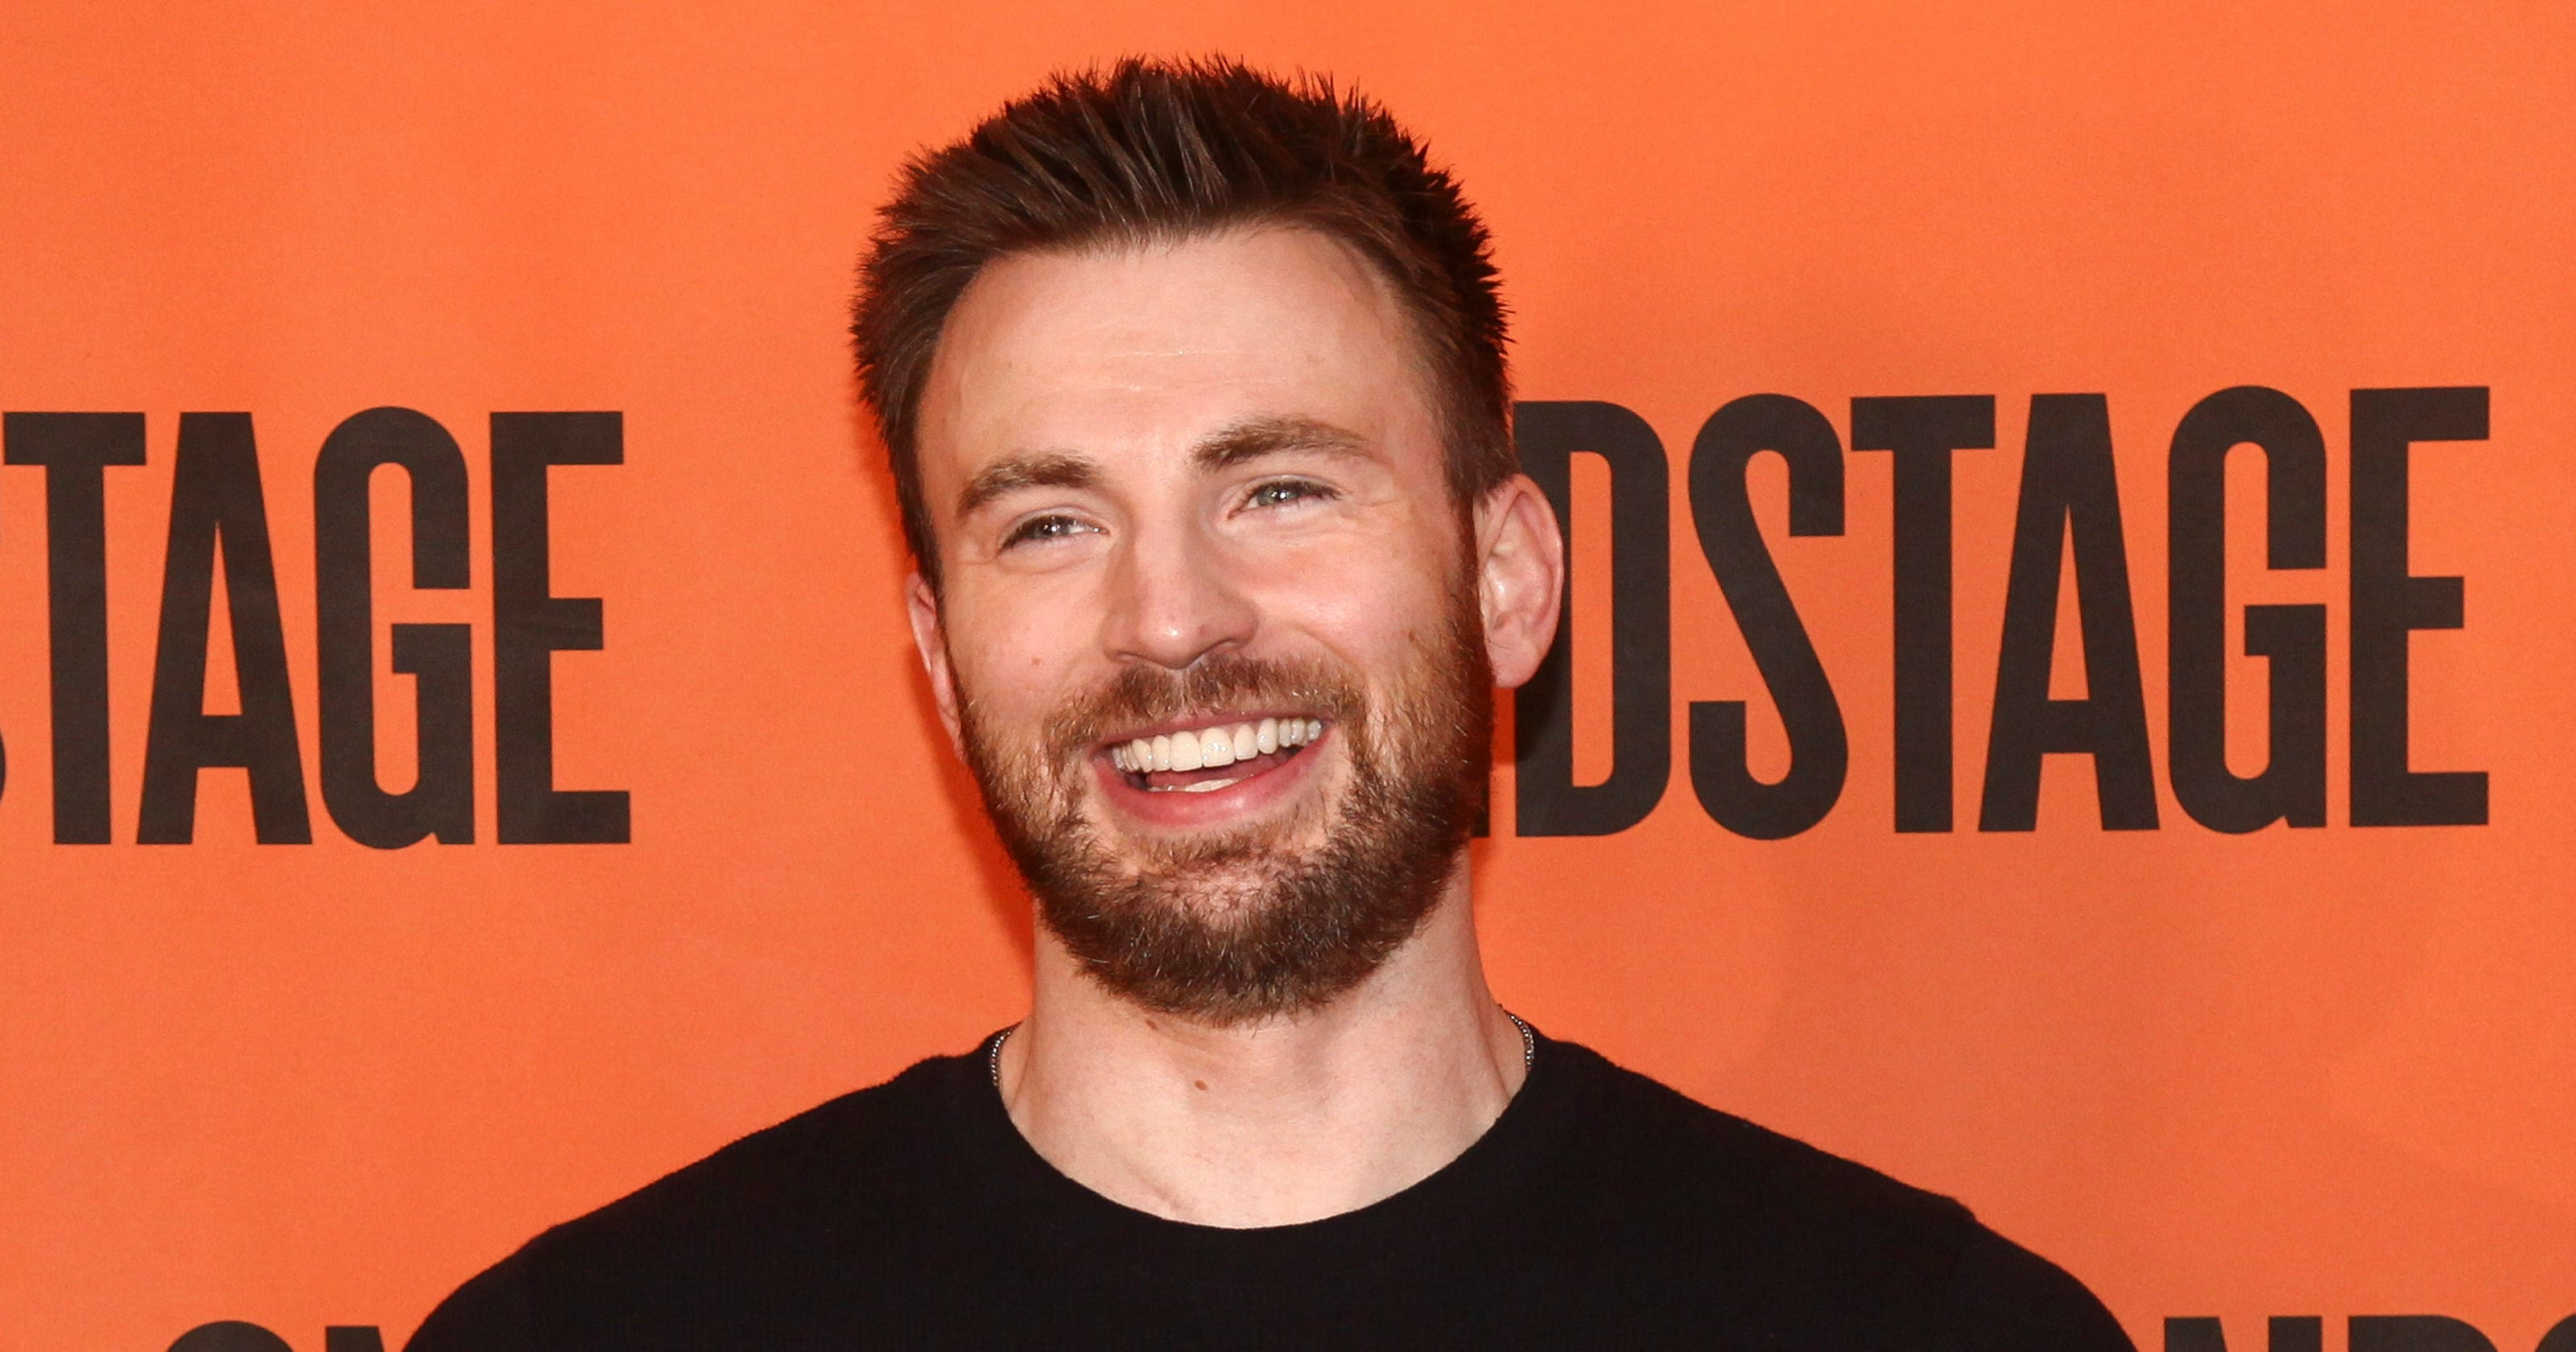 Chris Evans On Why Moronic Donald Trump Misspells Things